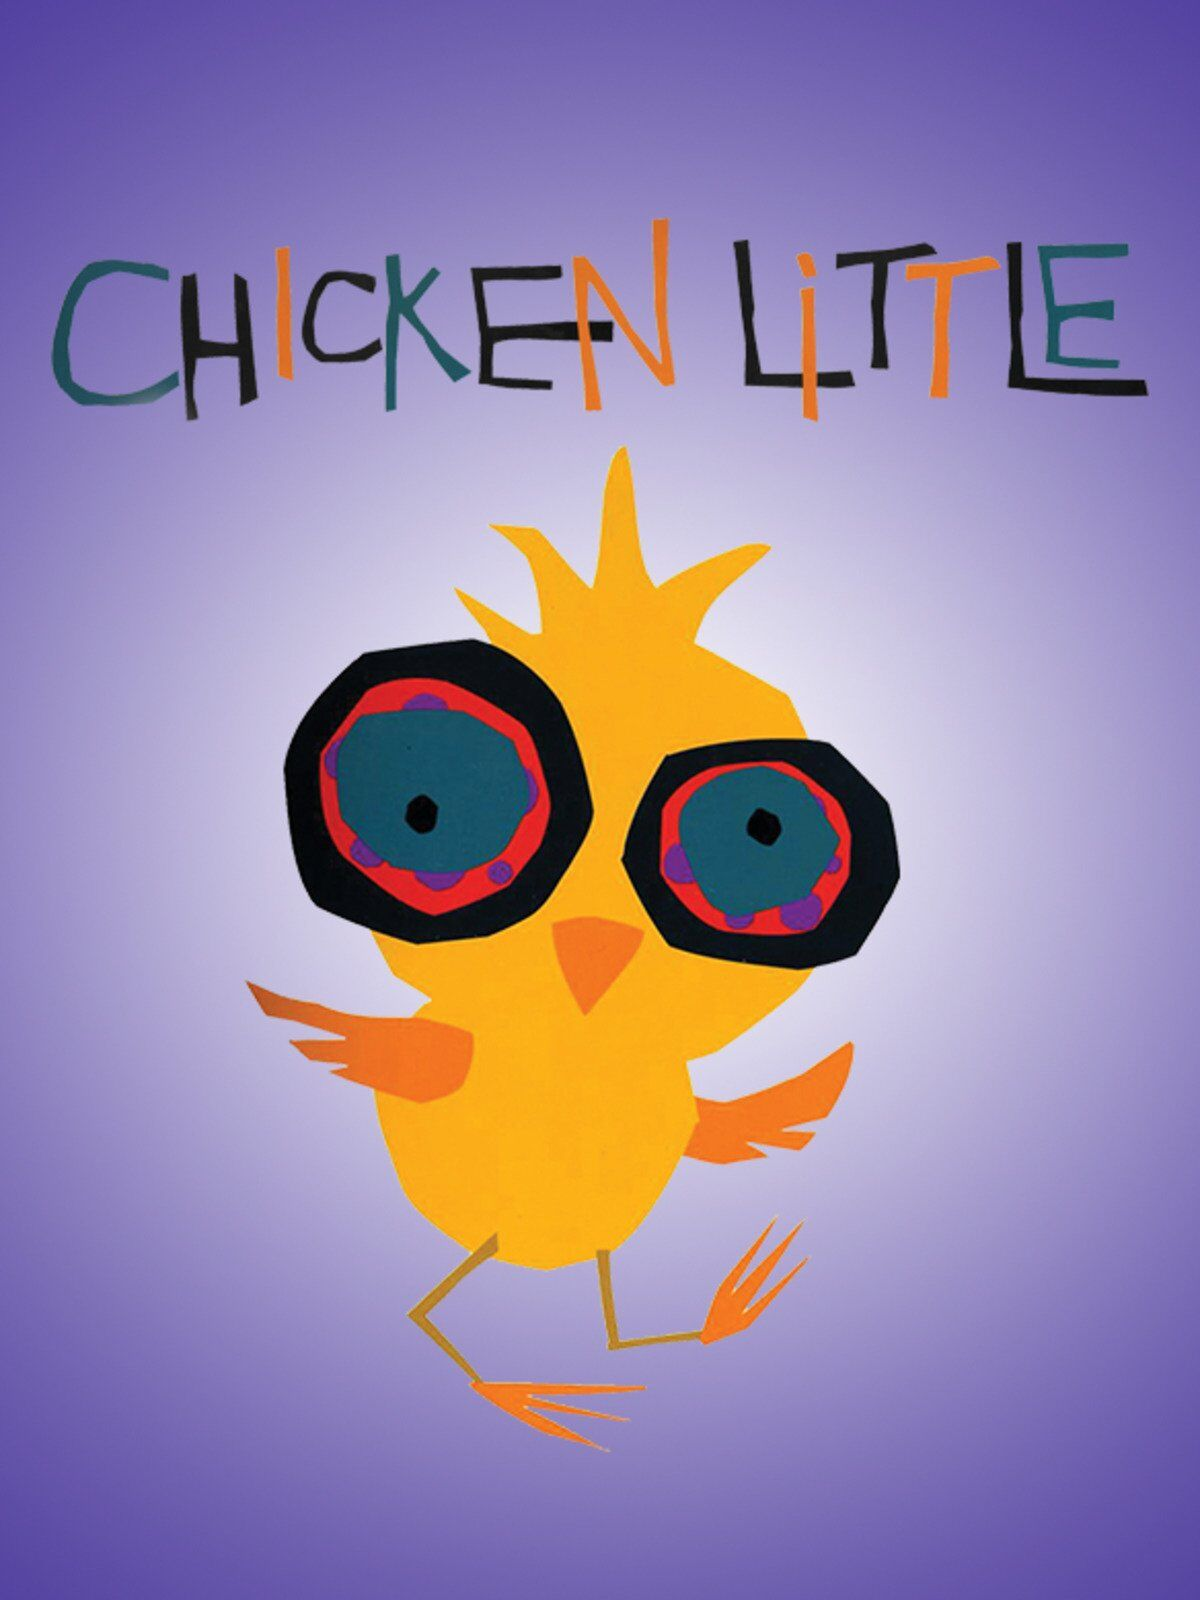 Chicken Little (2017)